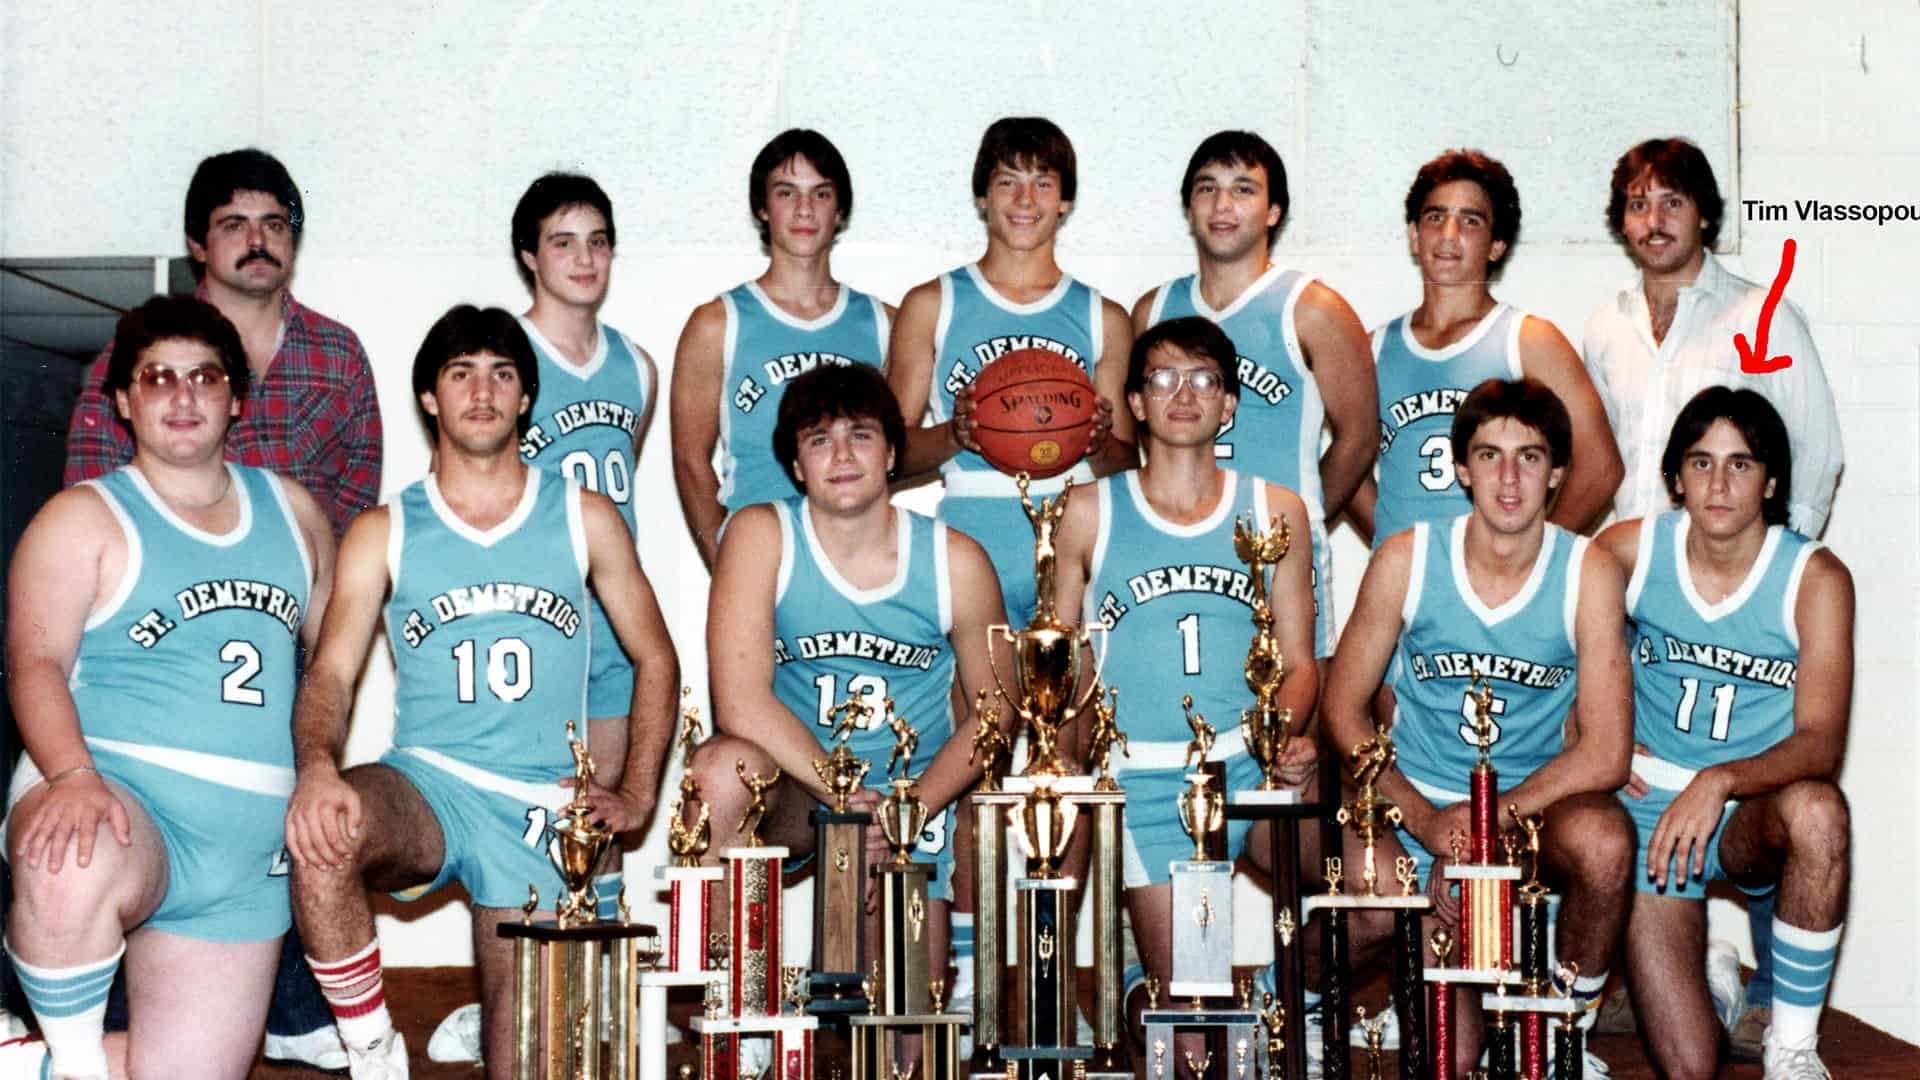 1983 GOYA National Basketball Champions, St. Demetrios of Upper Darby